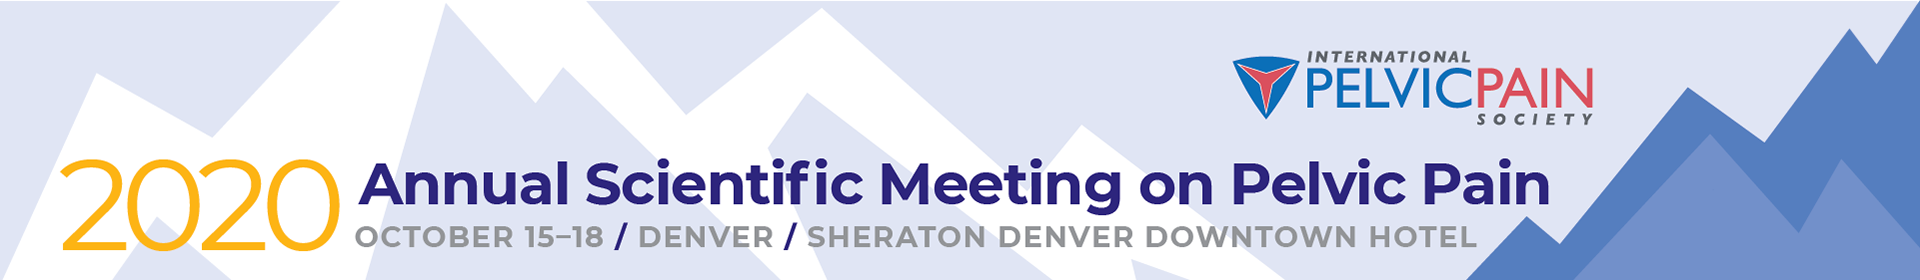 2020 Annual Scientific Meeting on Pelvic Pain Event Banner